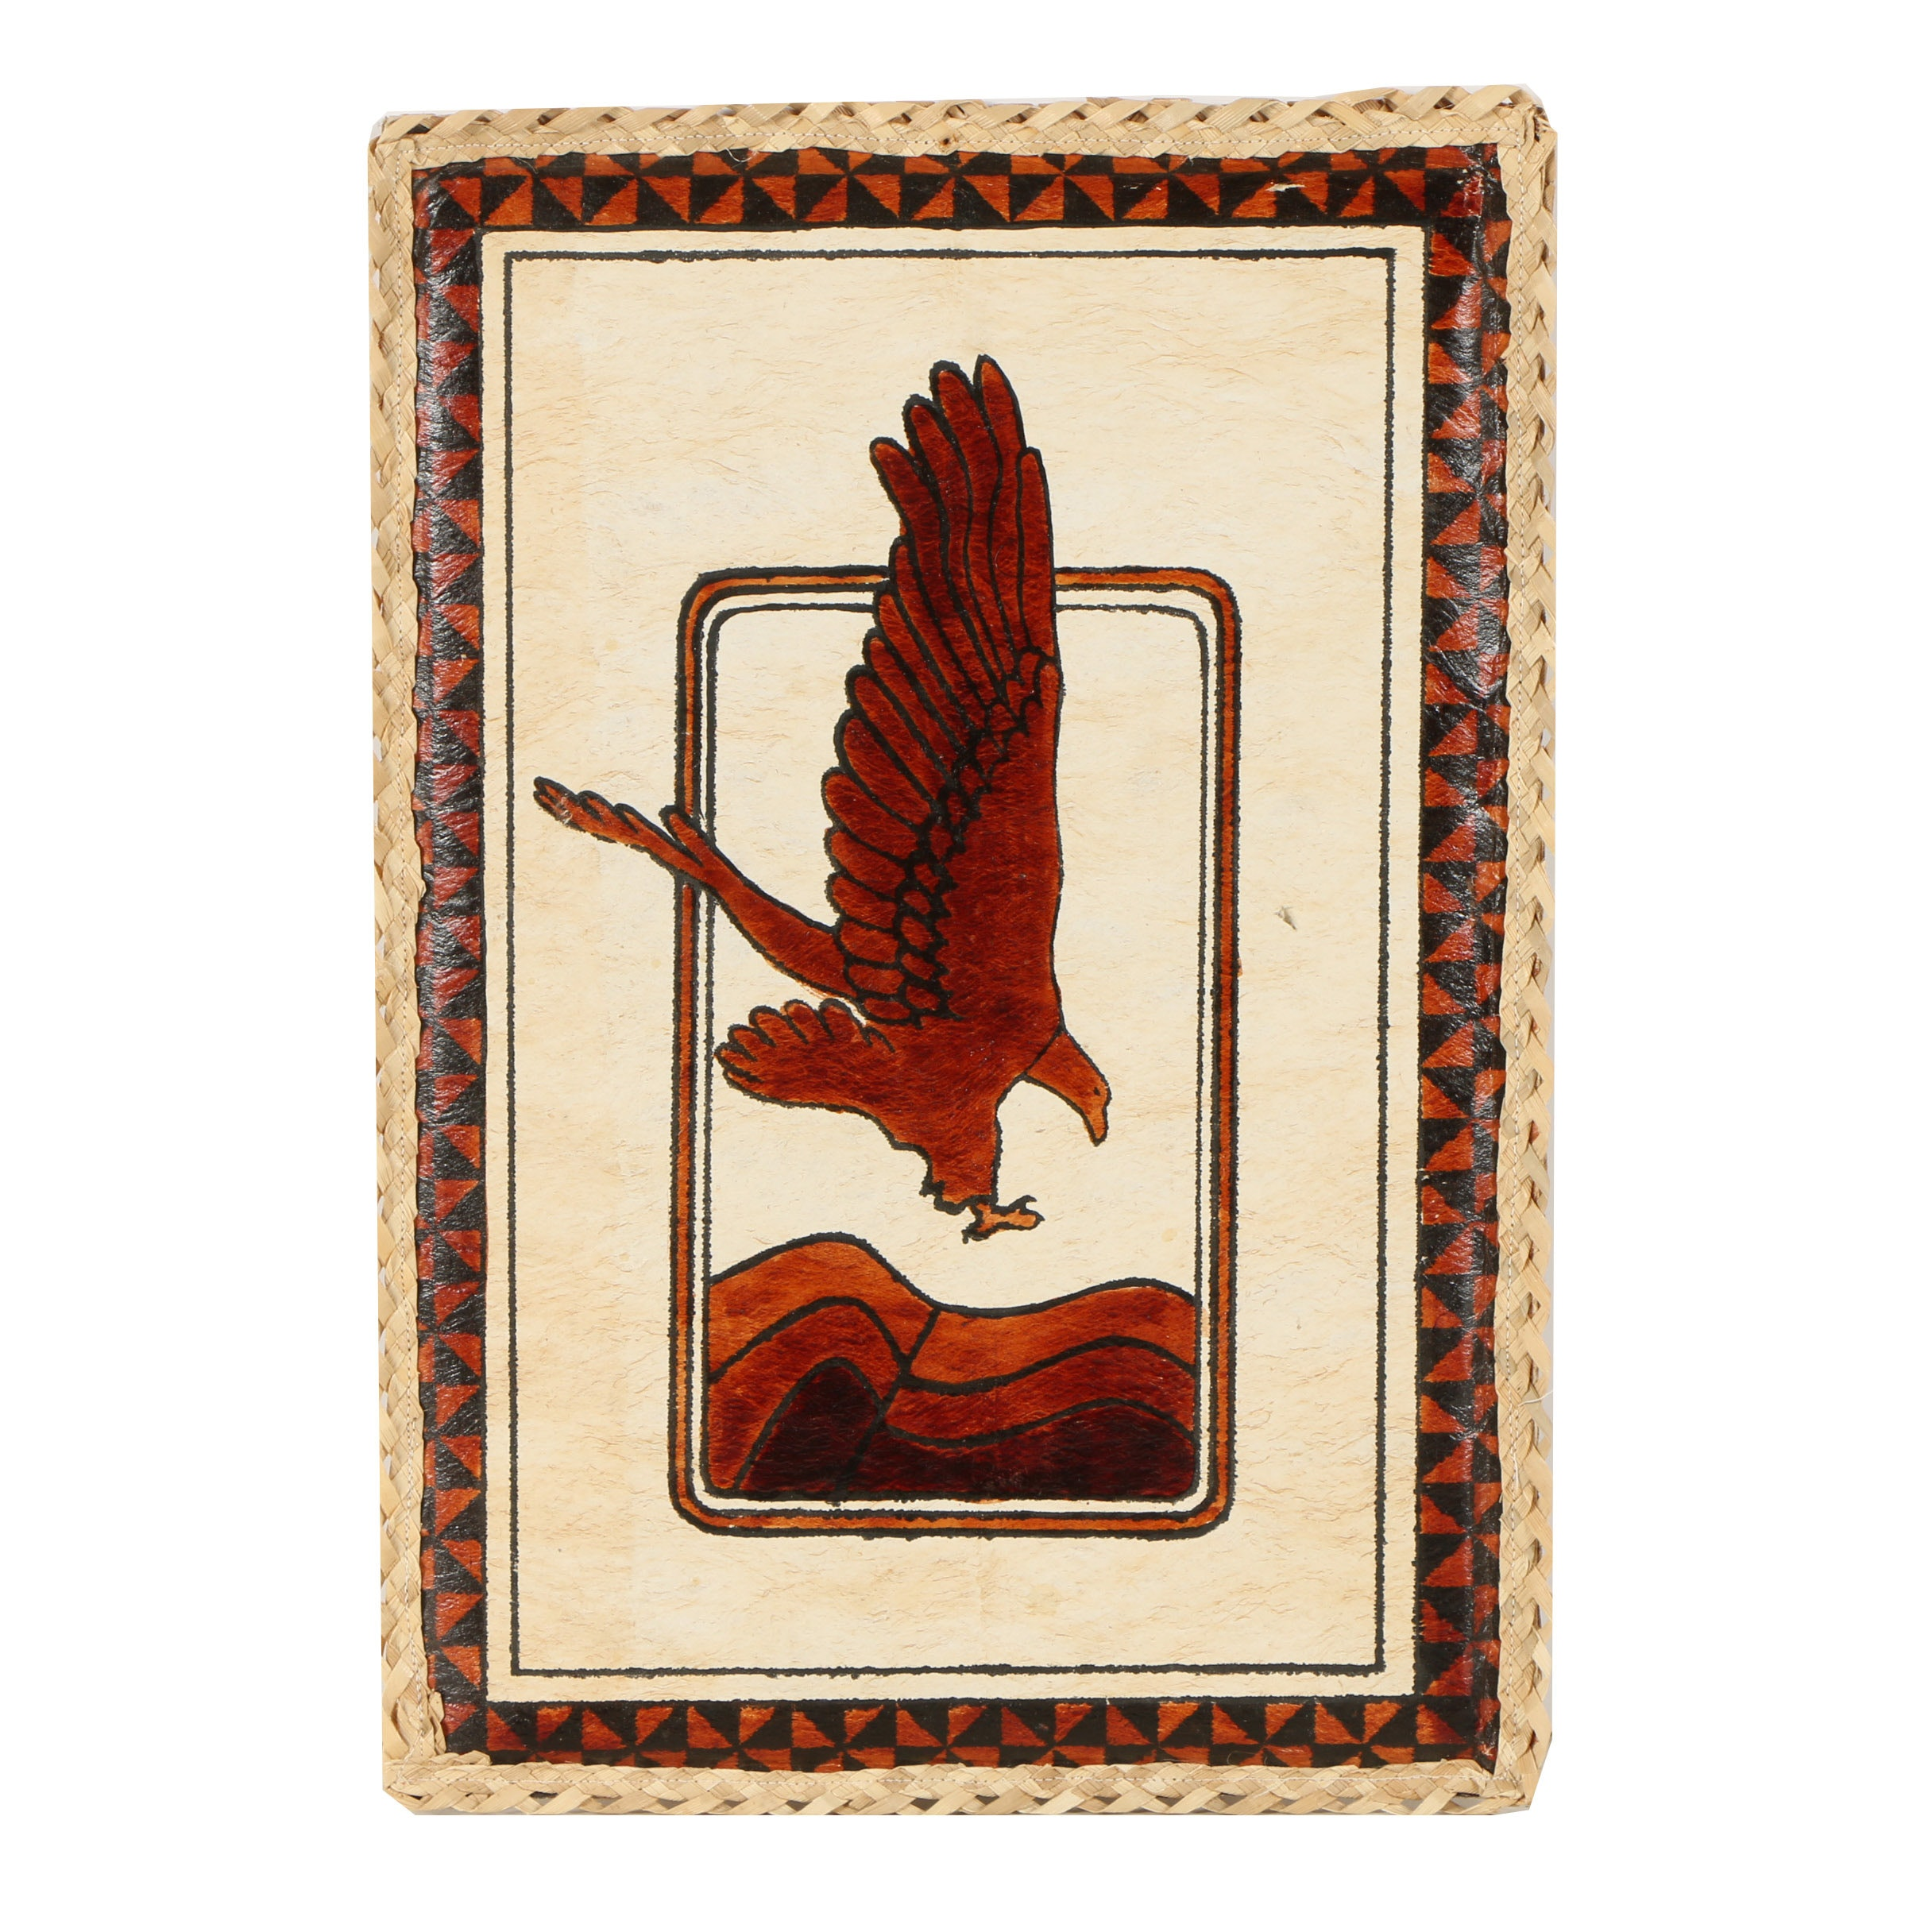 Hand-Colored Serigraph of an Eagle